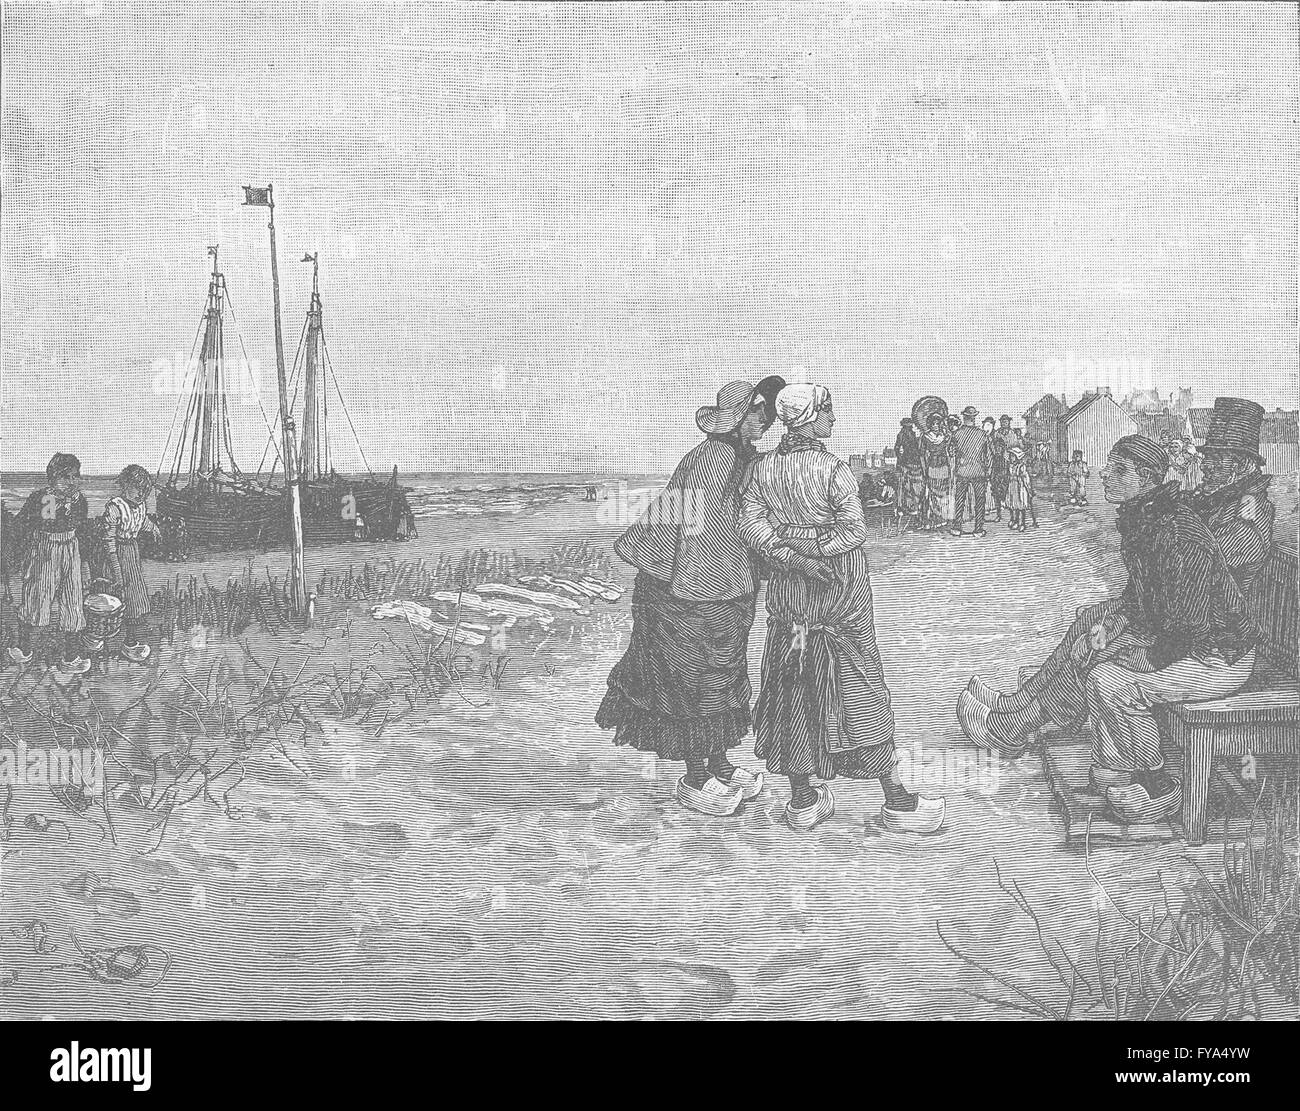 NETHERLANDS: Scheveningen-Dutch seaside resort near The Hague, old print 1894 - Stock Image